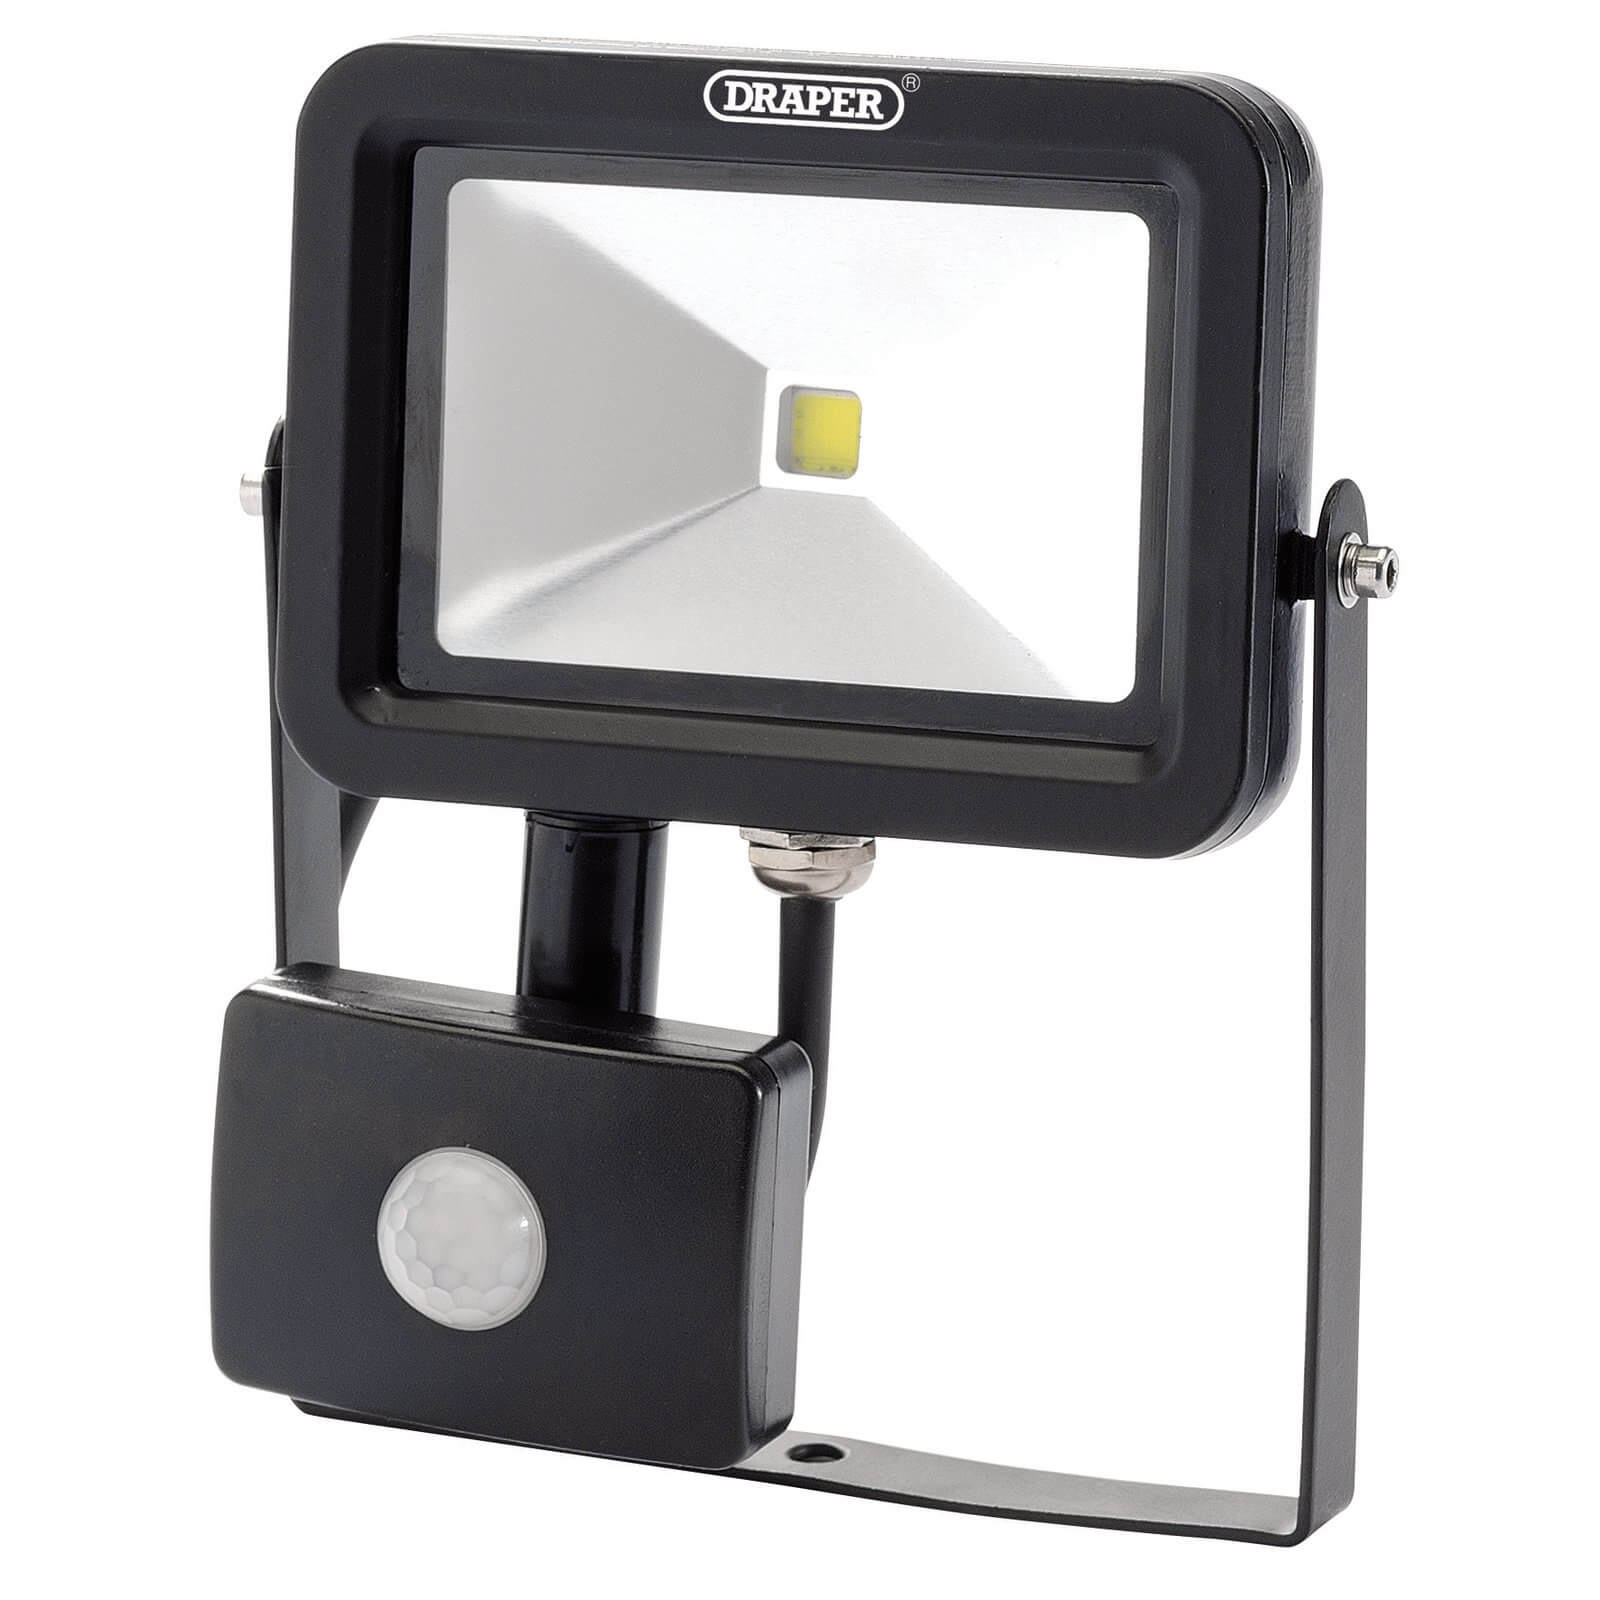 Image of Draper COB LED Slimeline Wall Mounted Floodlight With PIR 10 Watts